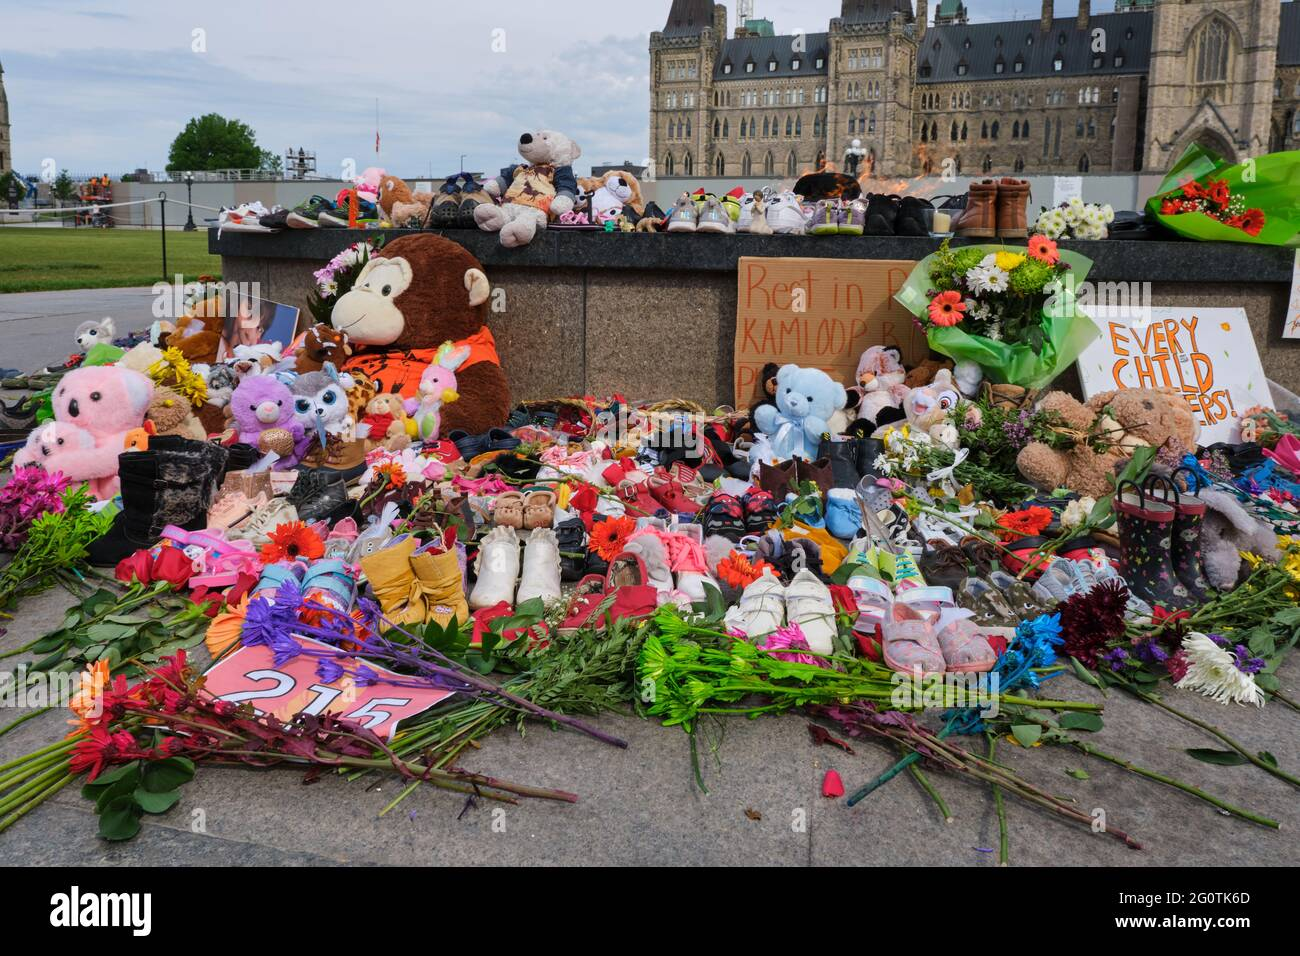 ottawa-canada-june-1-2021-memorial-to-215-aboriginal-children-whose-remain-found-in-residential-school-in-kamloops-toys-and-shoes-left-2G0TK6D.jpg